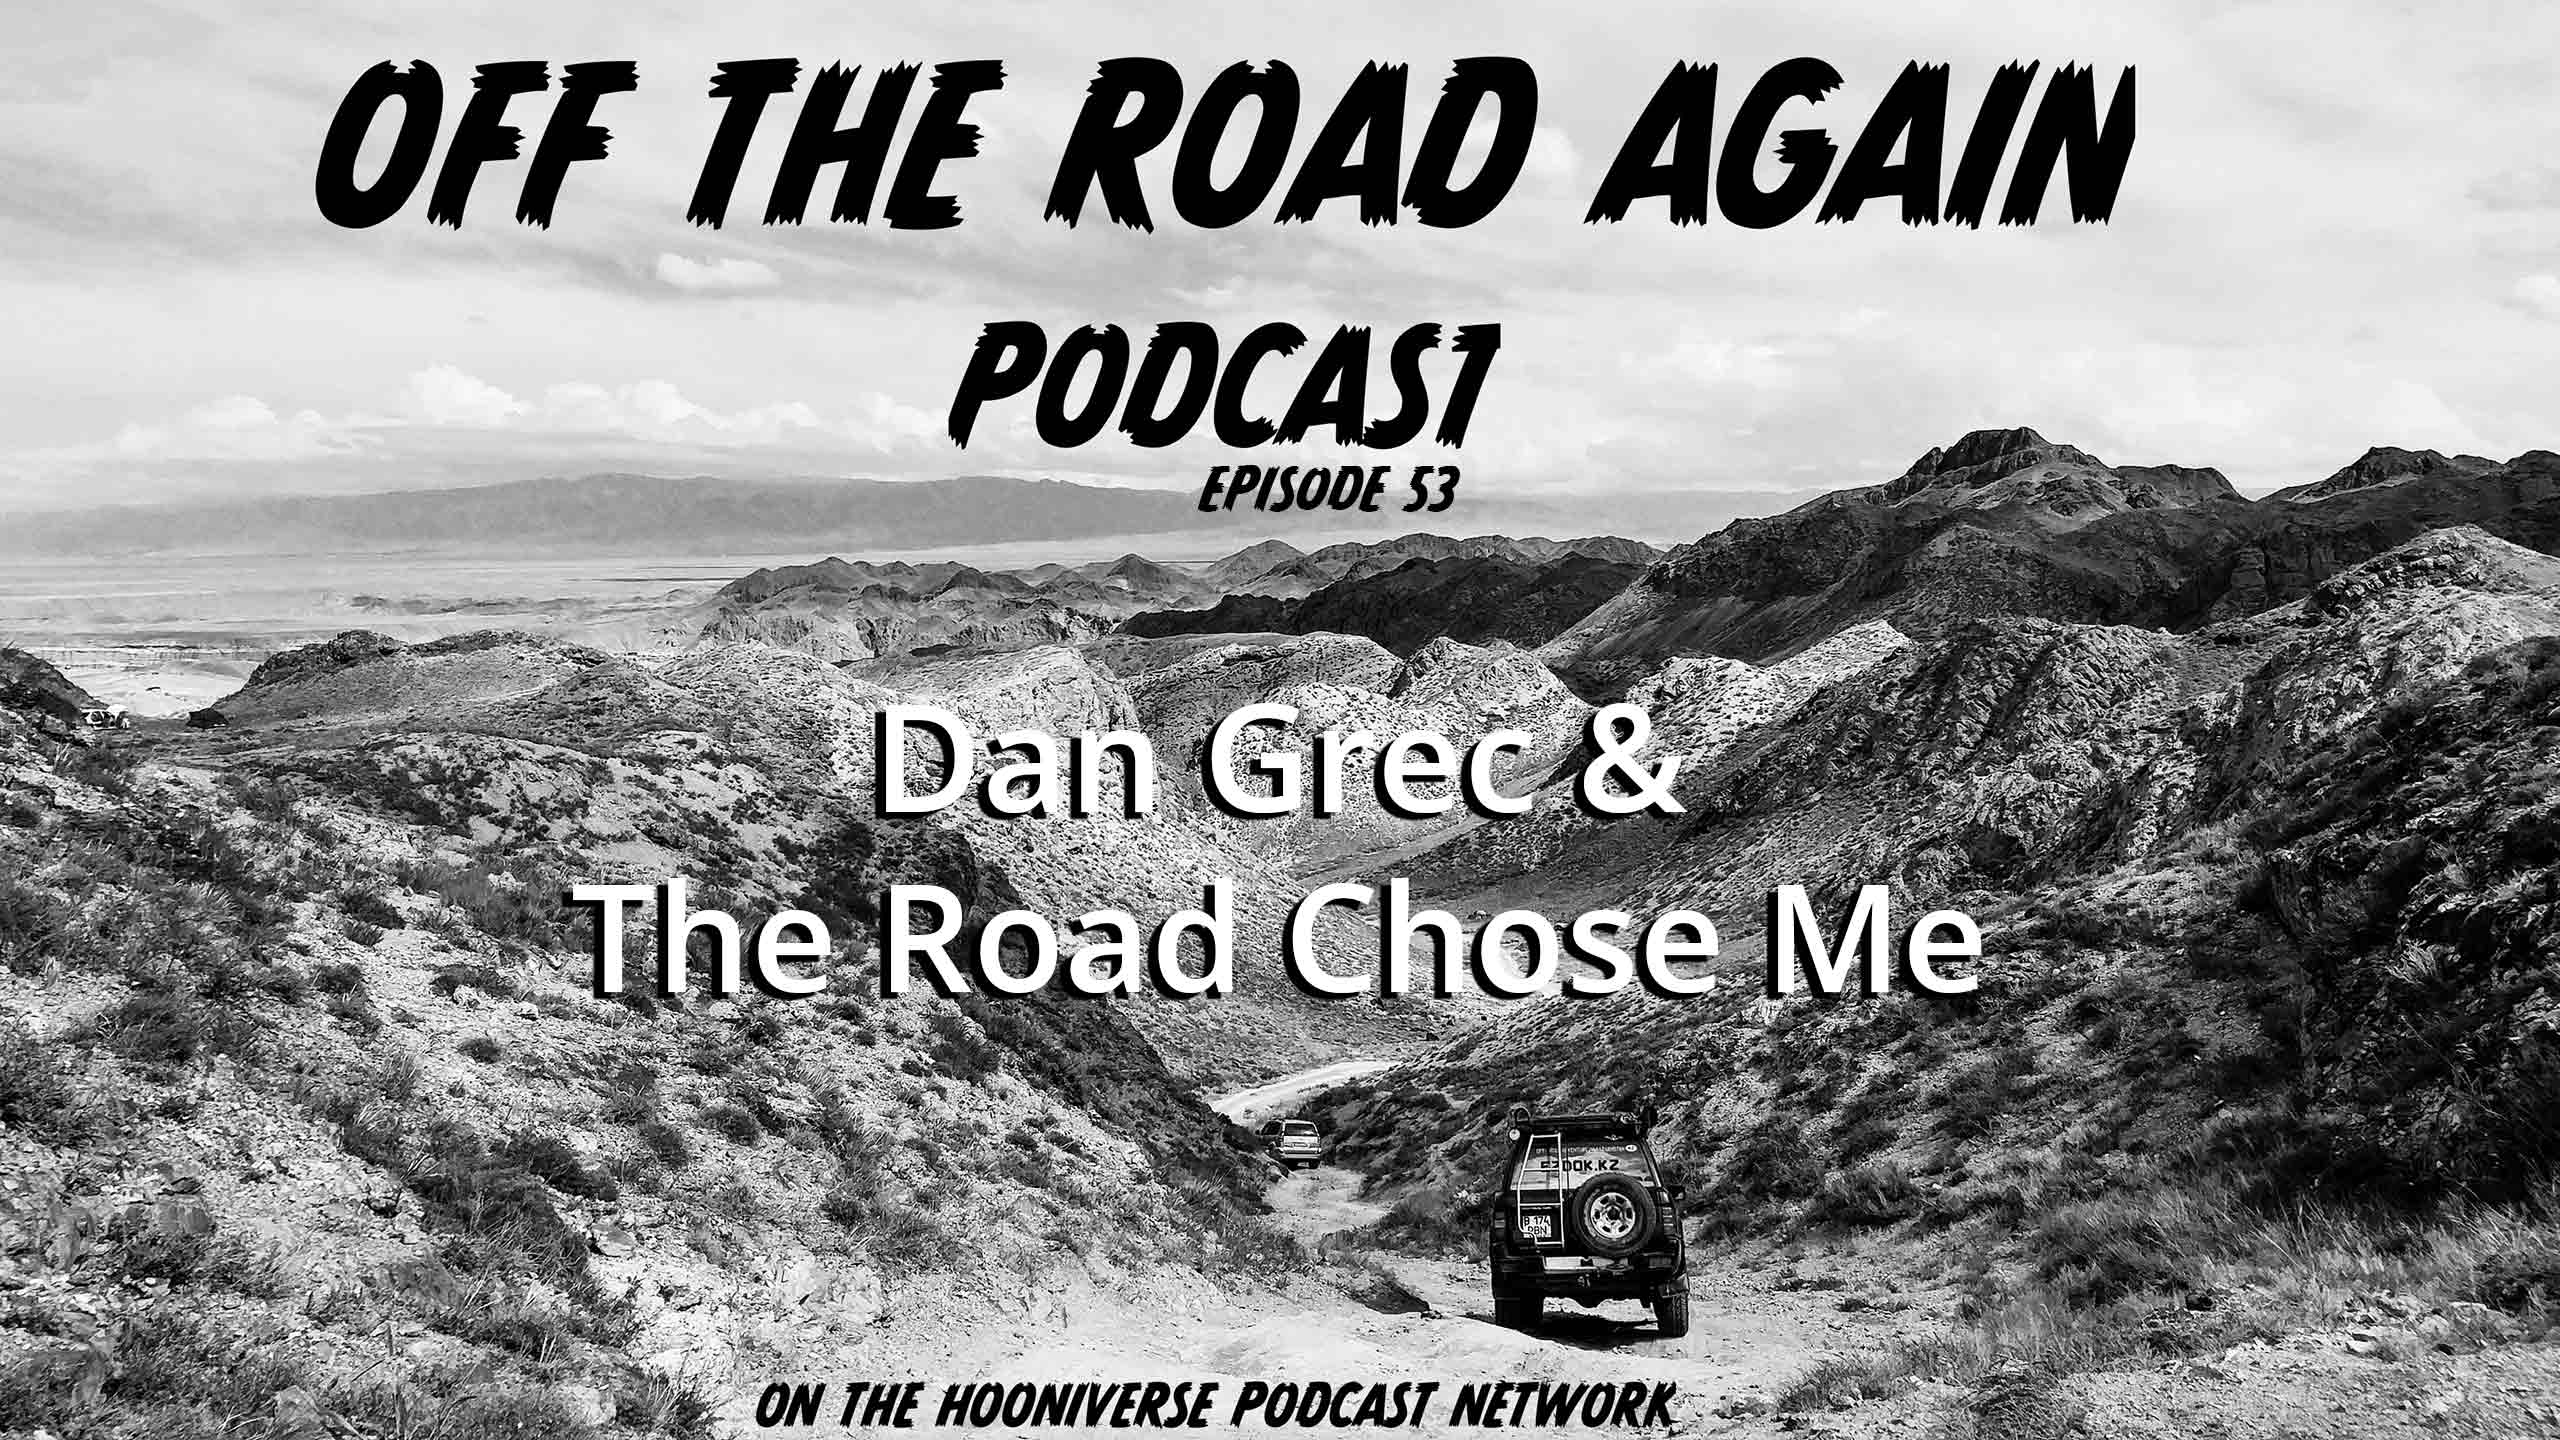 Dan-Grec-The-Road-Chose-Me-Off-The-Road-Again-Podcast-Episode-53